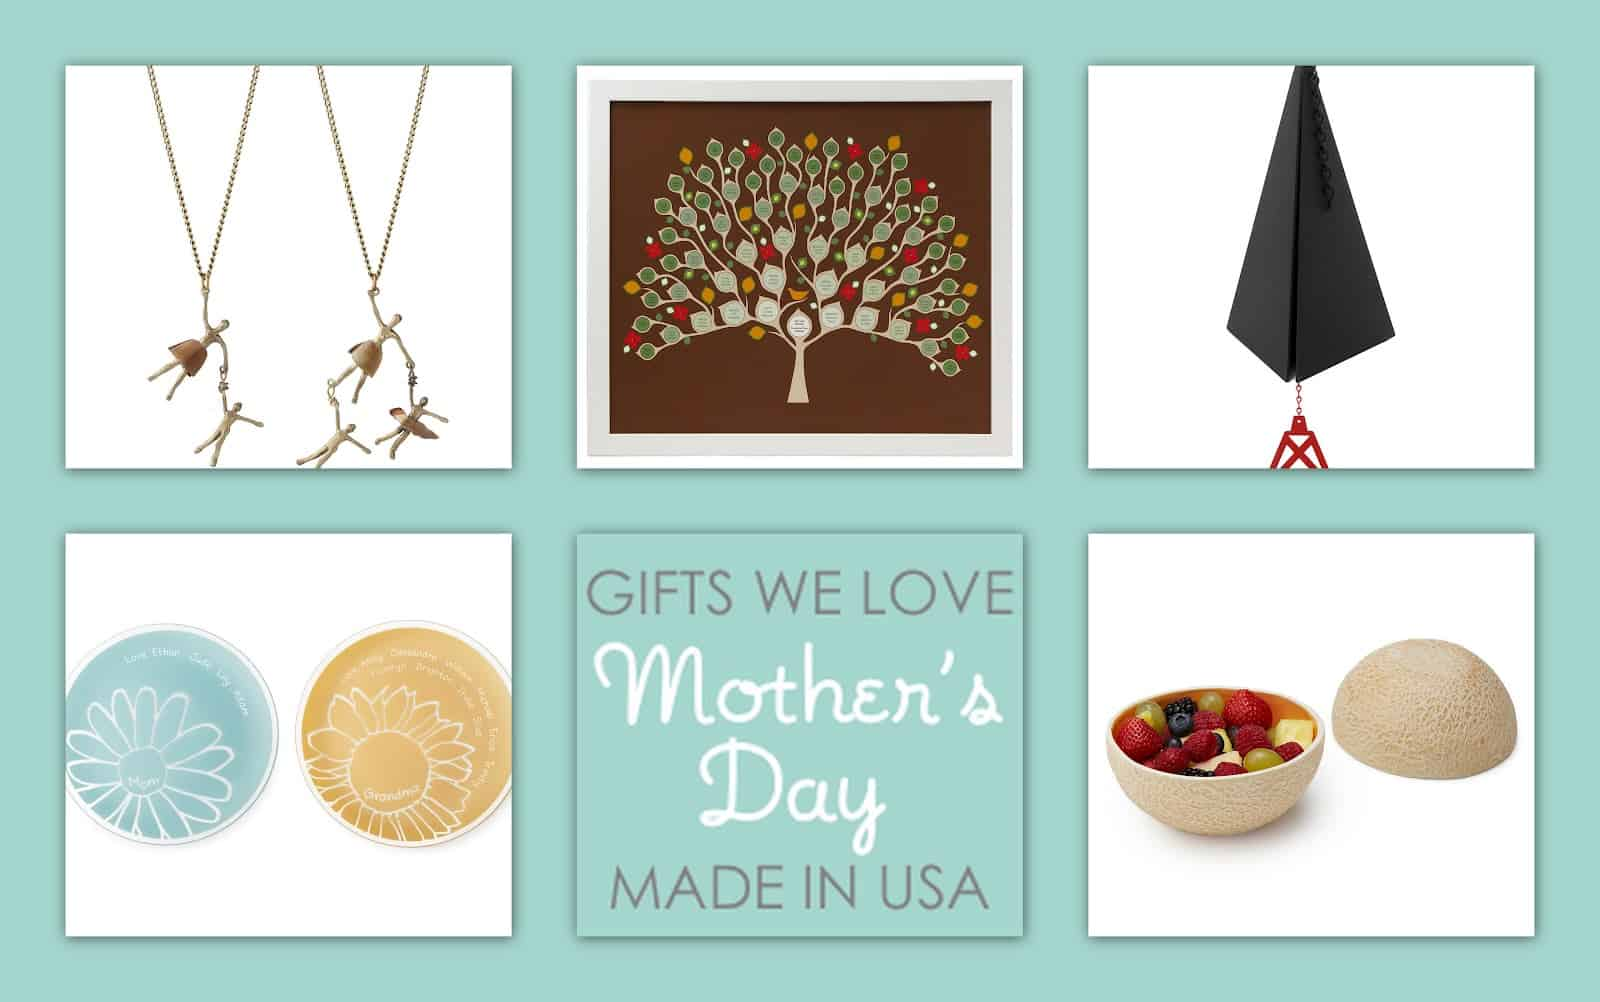 Candy made in the usa the ultimate source guide only the best for mom unique gifts for mothers day all made in the negle Images